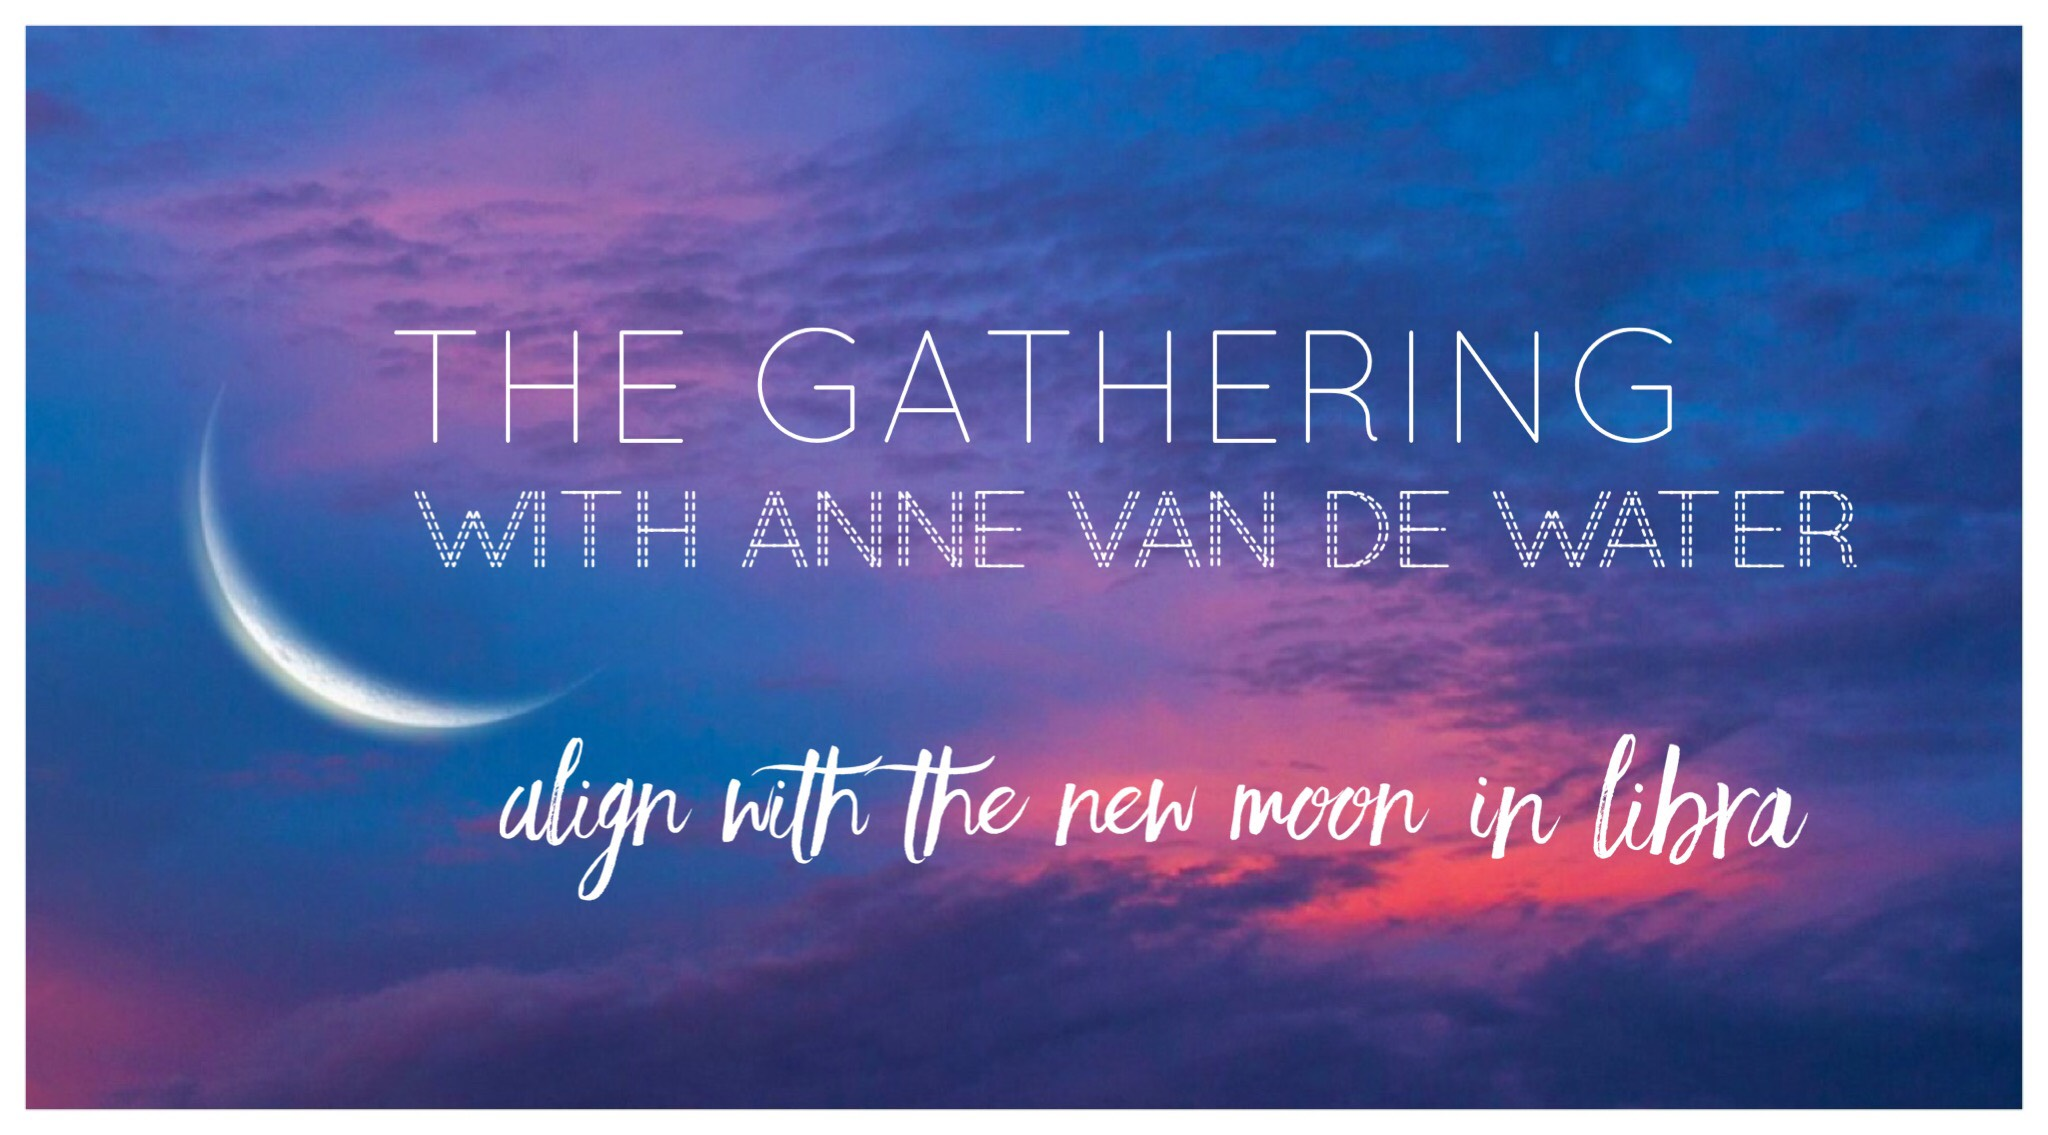 Libra Affinity The Gathering Align With The New Moon In Libra Anne Van De Water